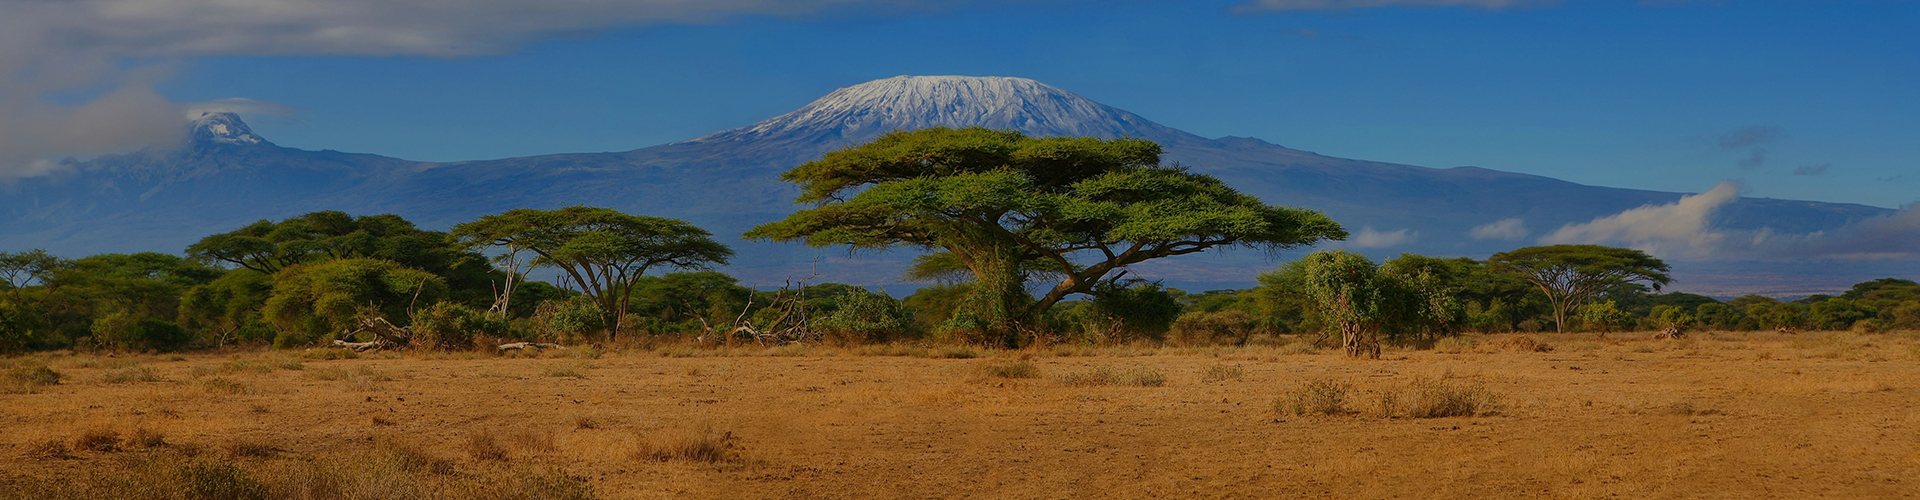 Landmark photograph of Tanzania